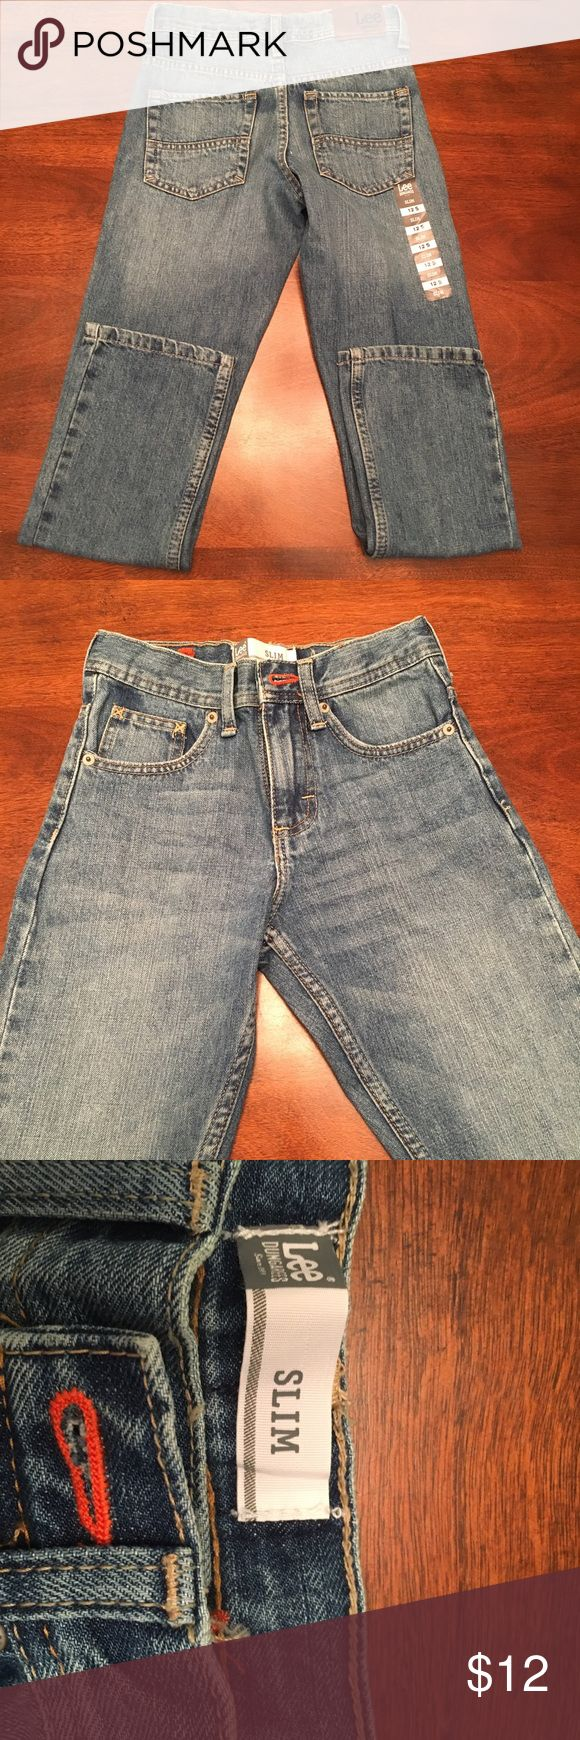 NWT Lee jeans These jeans are NWT and from a smoke and pet free home Lee Bottoms Jeans